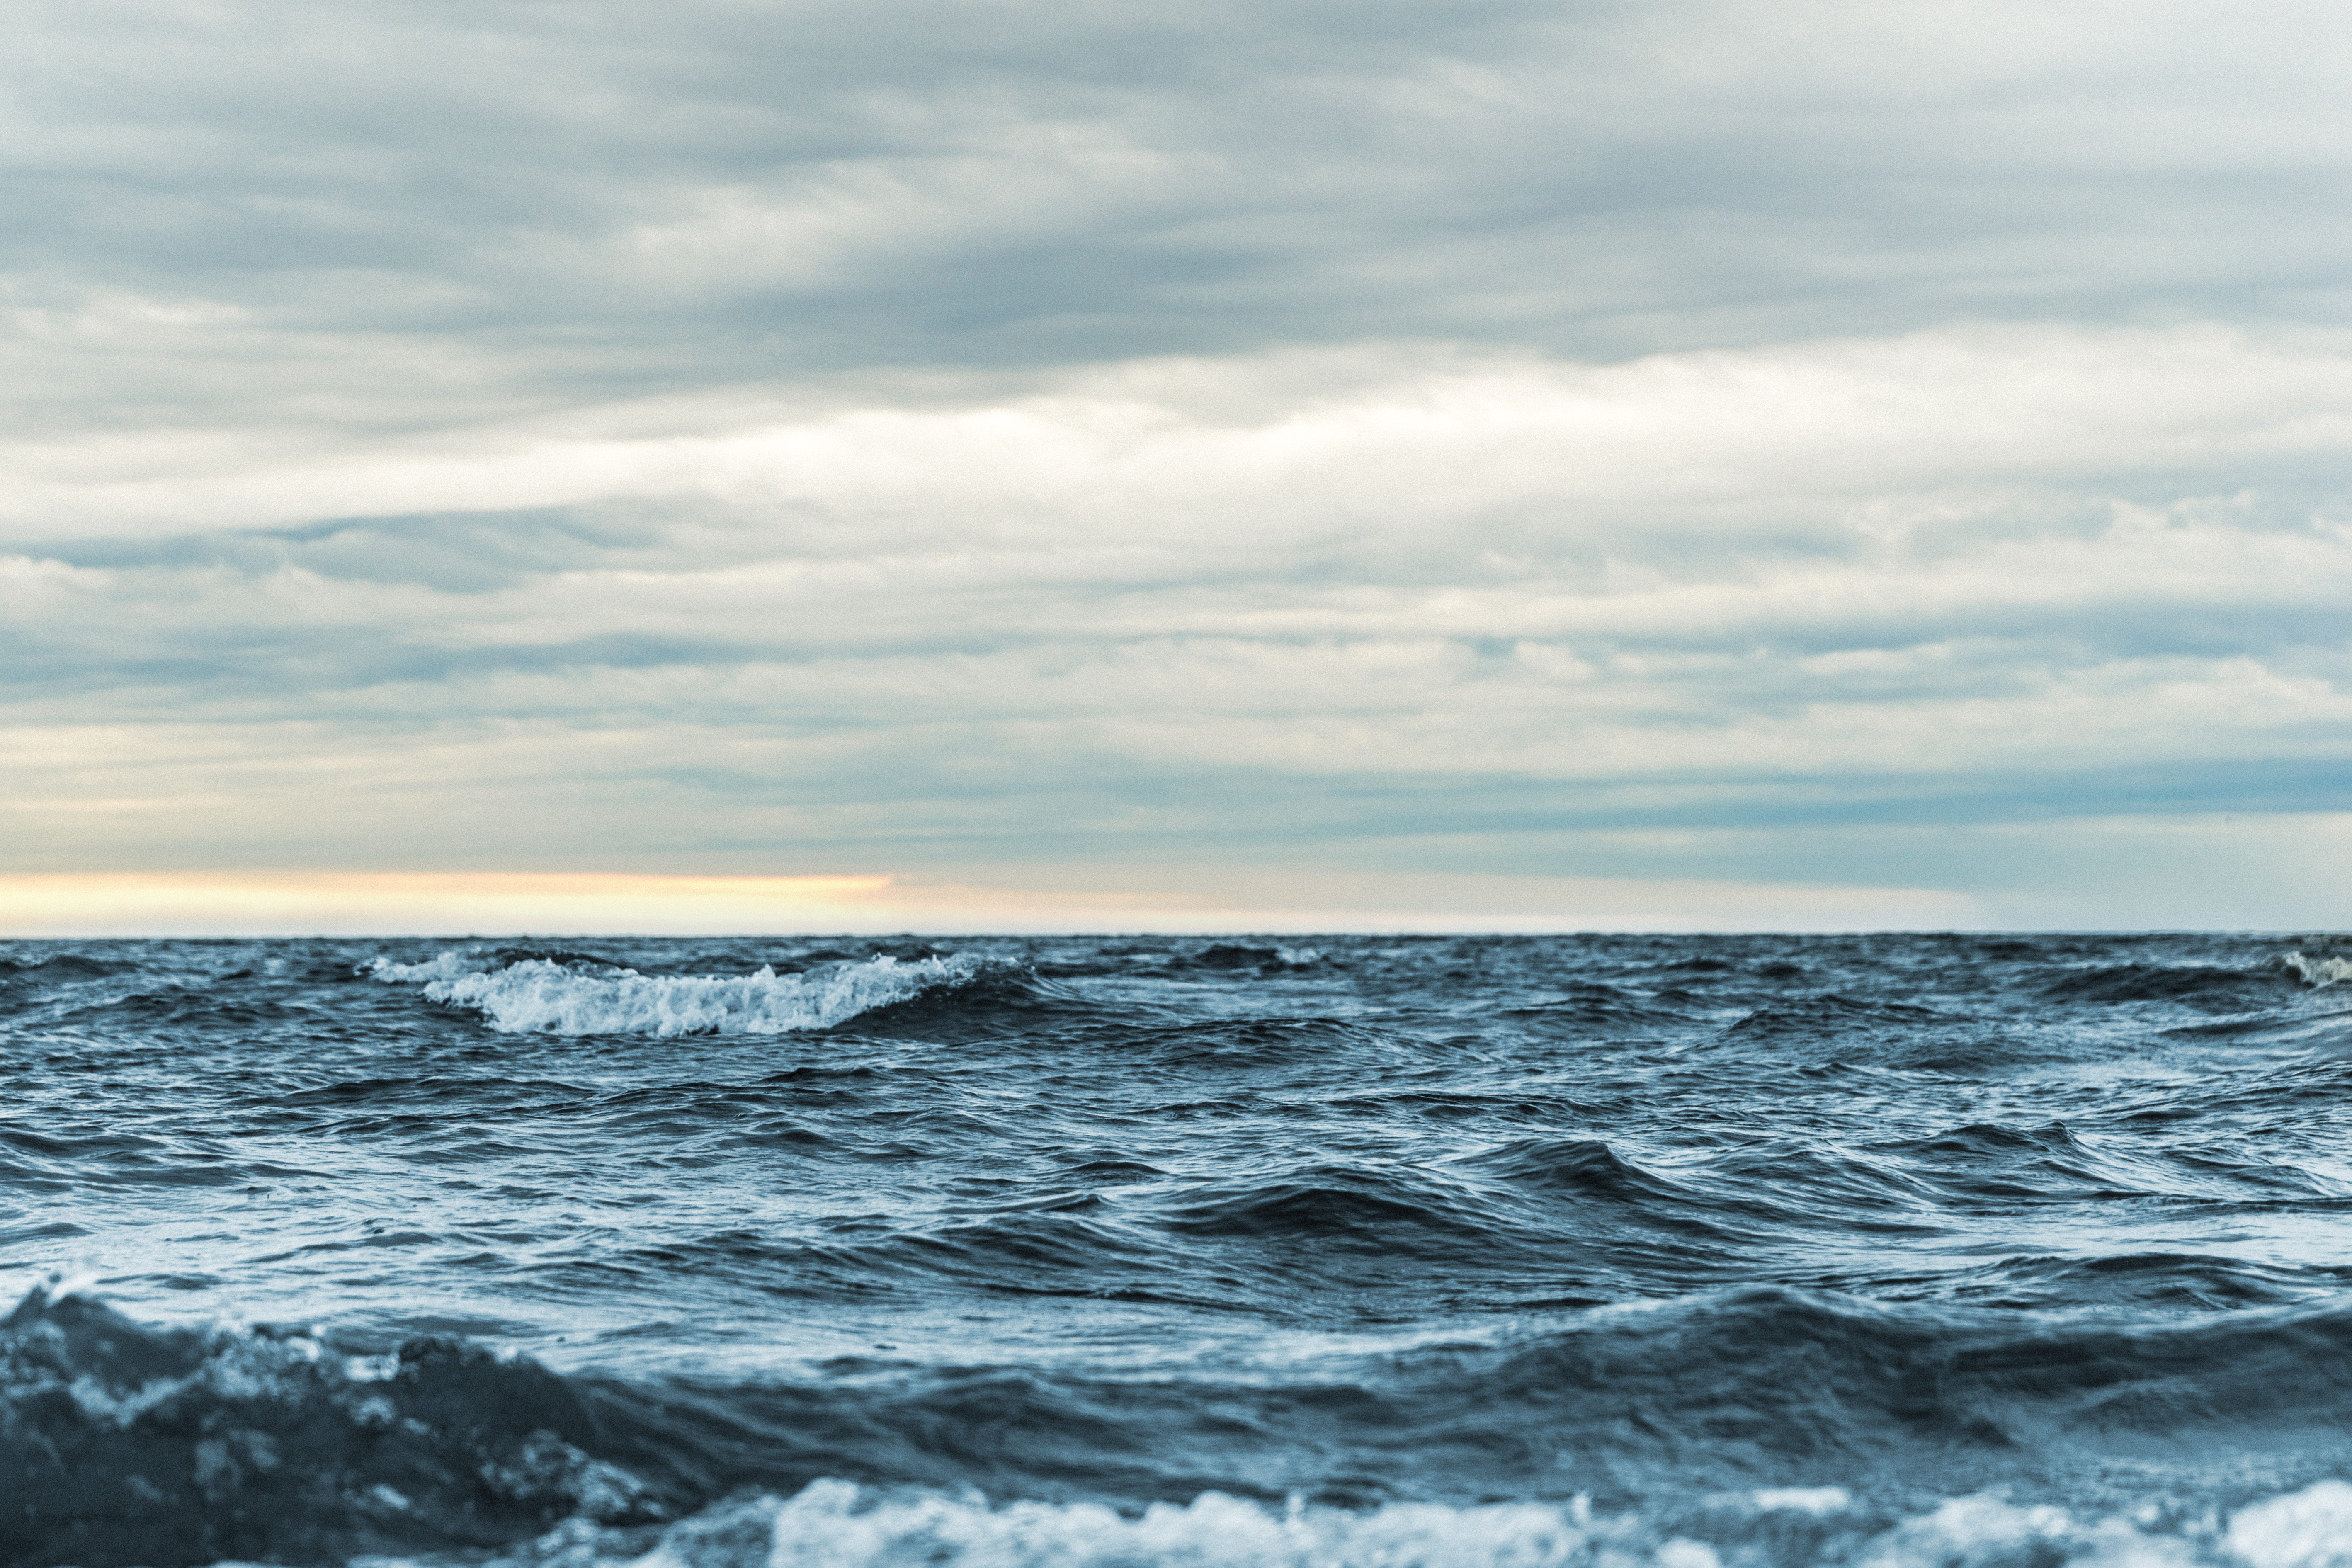 Hd Wallpaper Sea Beach Waves Pictures Download Free Images On Unsplash